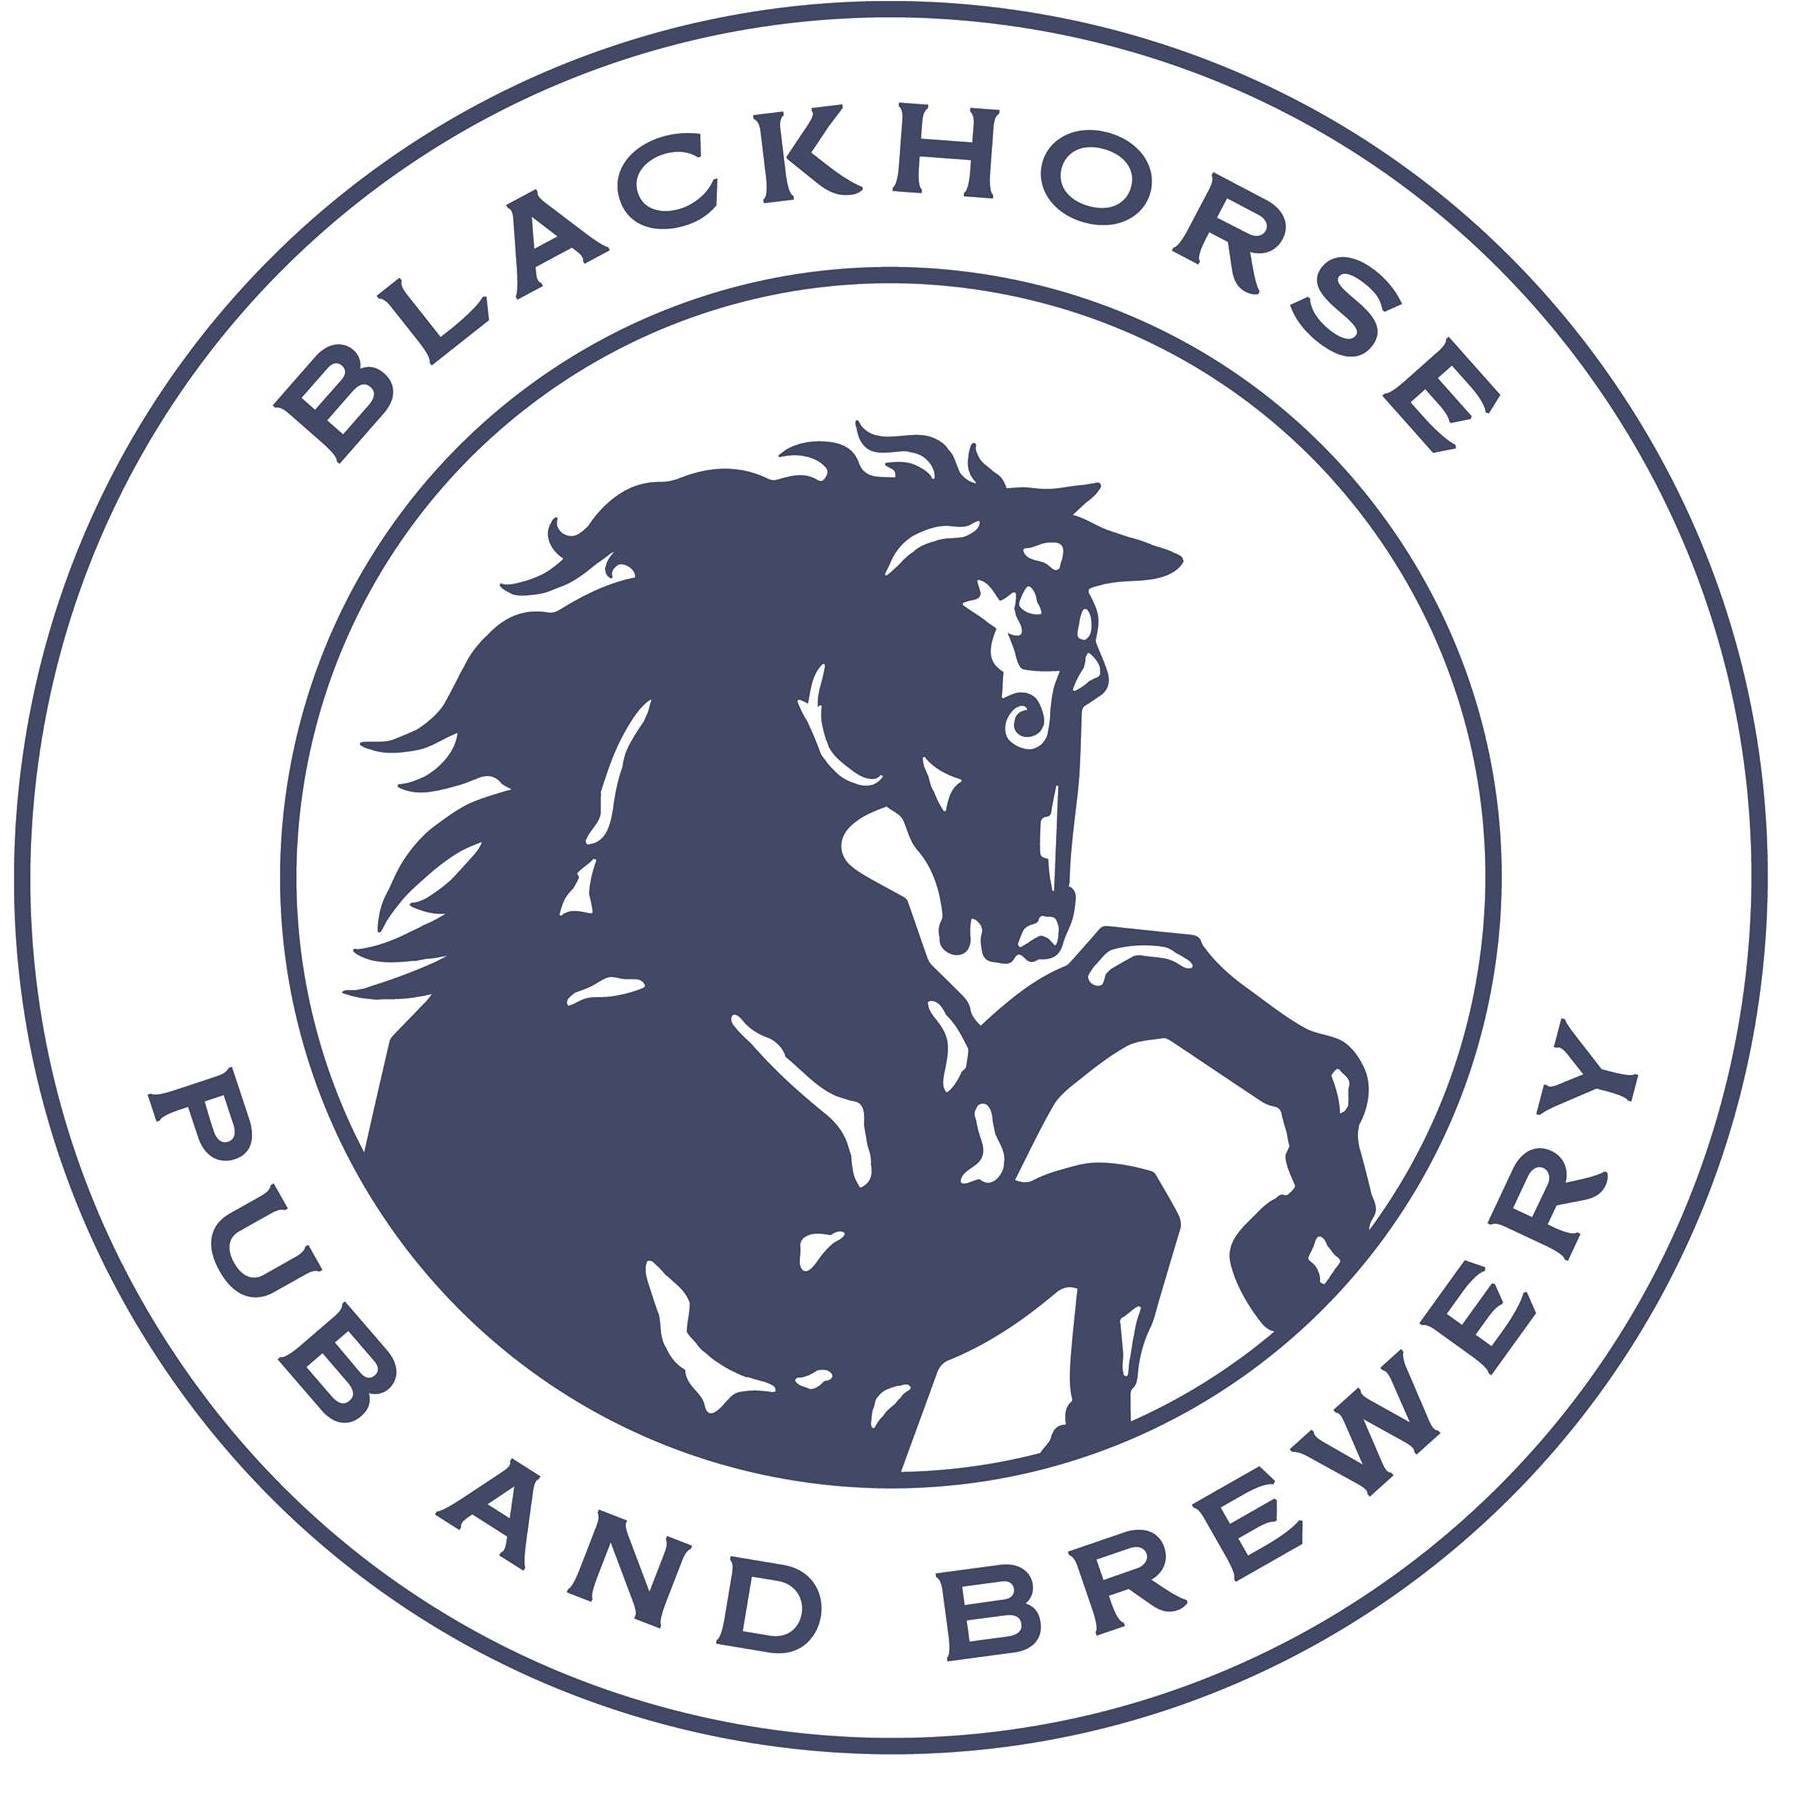 Blackhorse Pub and Brewery